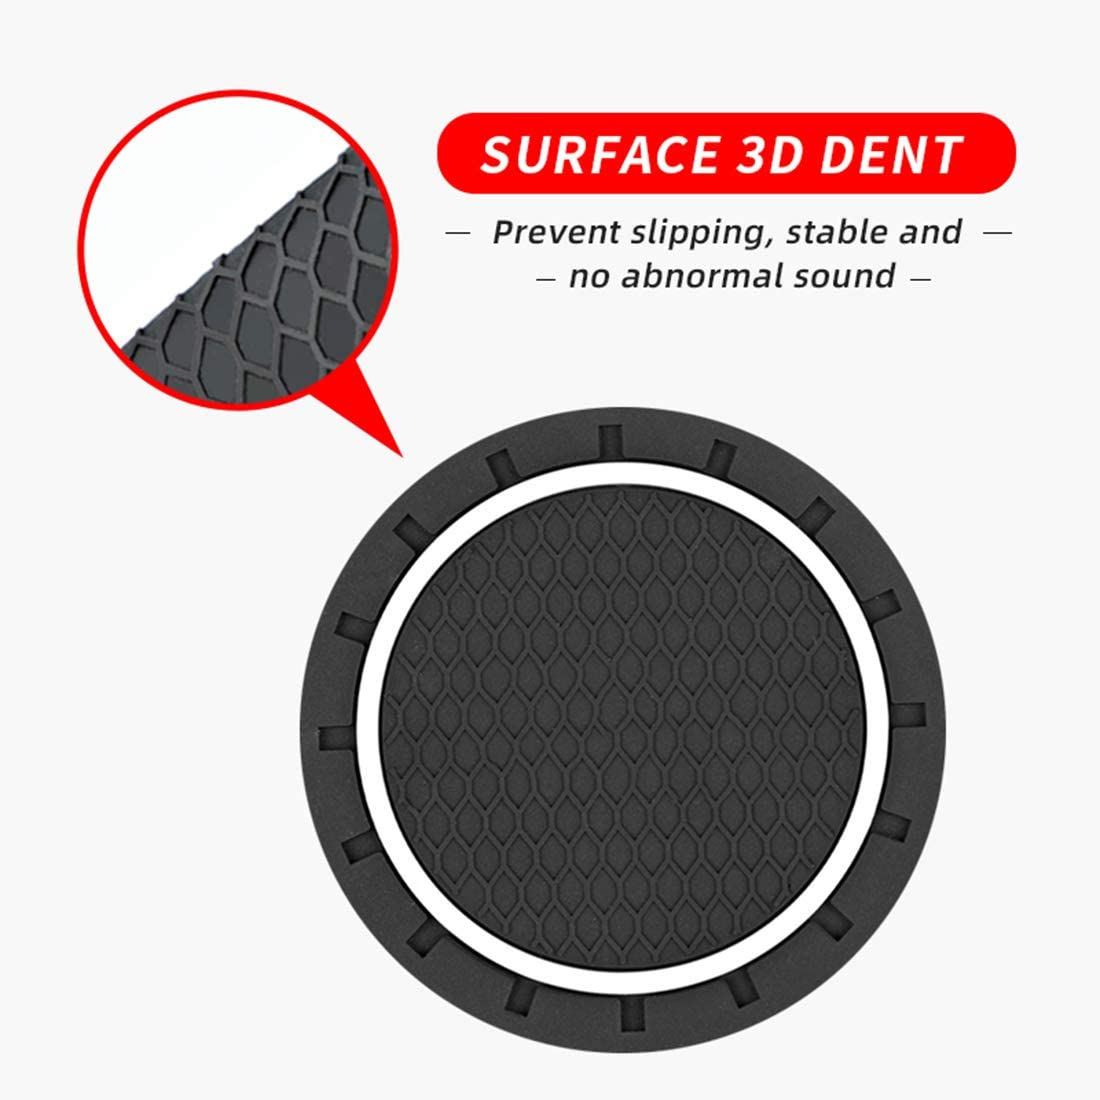 Auto Interior Decoration QWASZX 2 Pcs Car Cup Anti-Slip Mat Pad For Peugeot 206 207 307 3008 2008 308 408 508 301 208 Round Pvc Anti-Skid Coasters